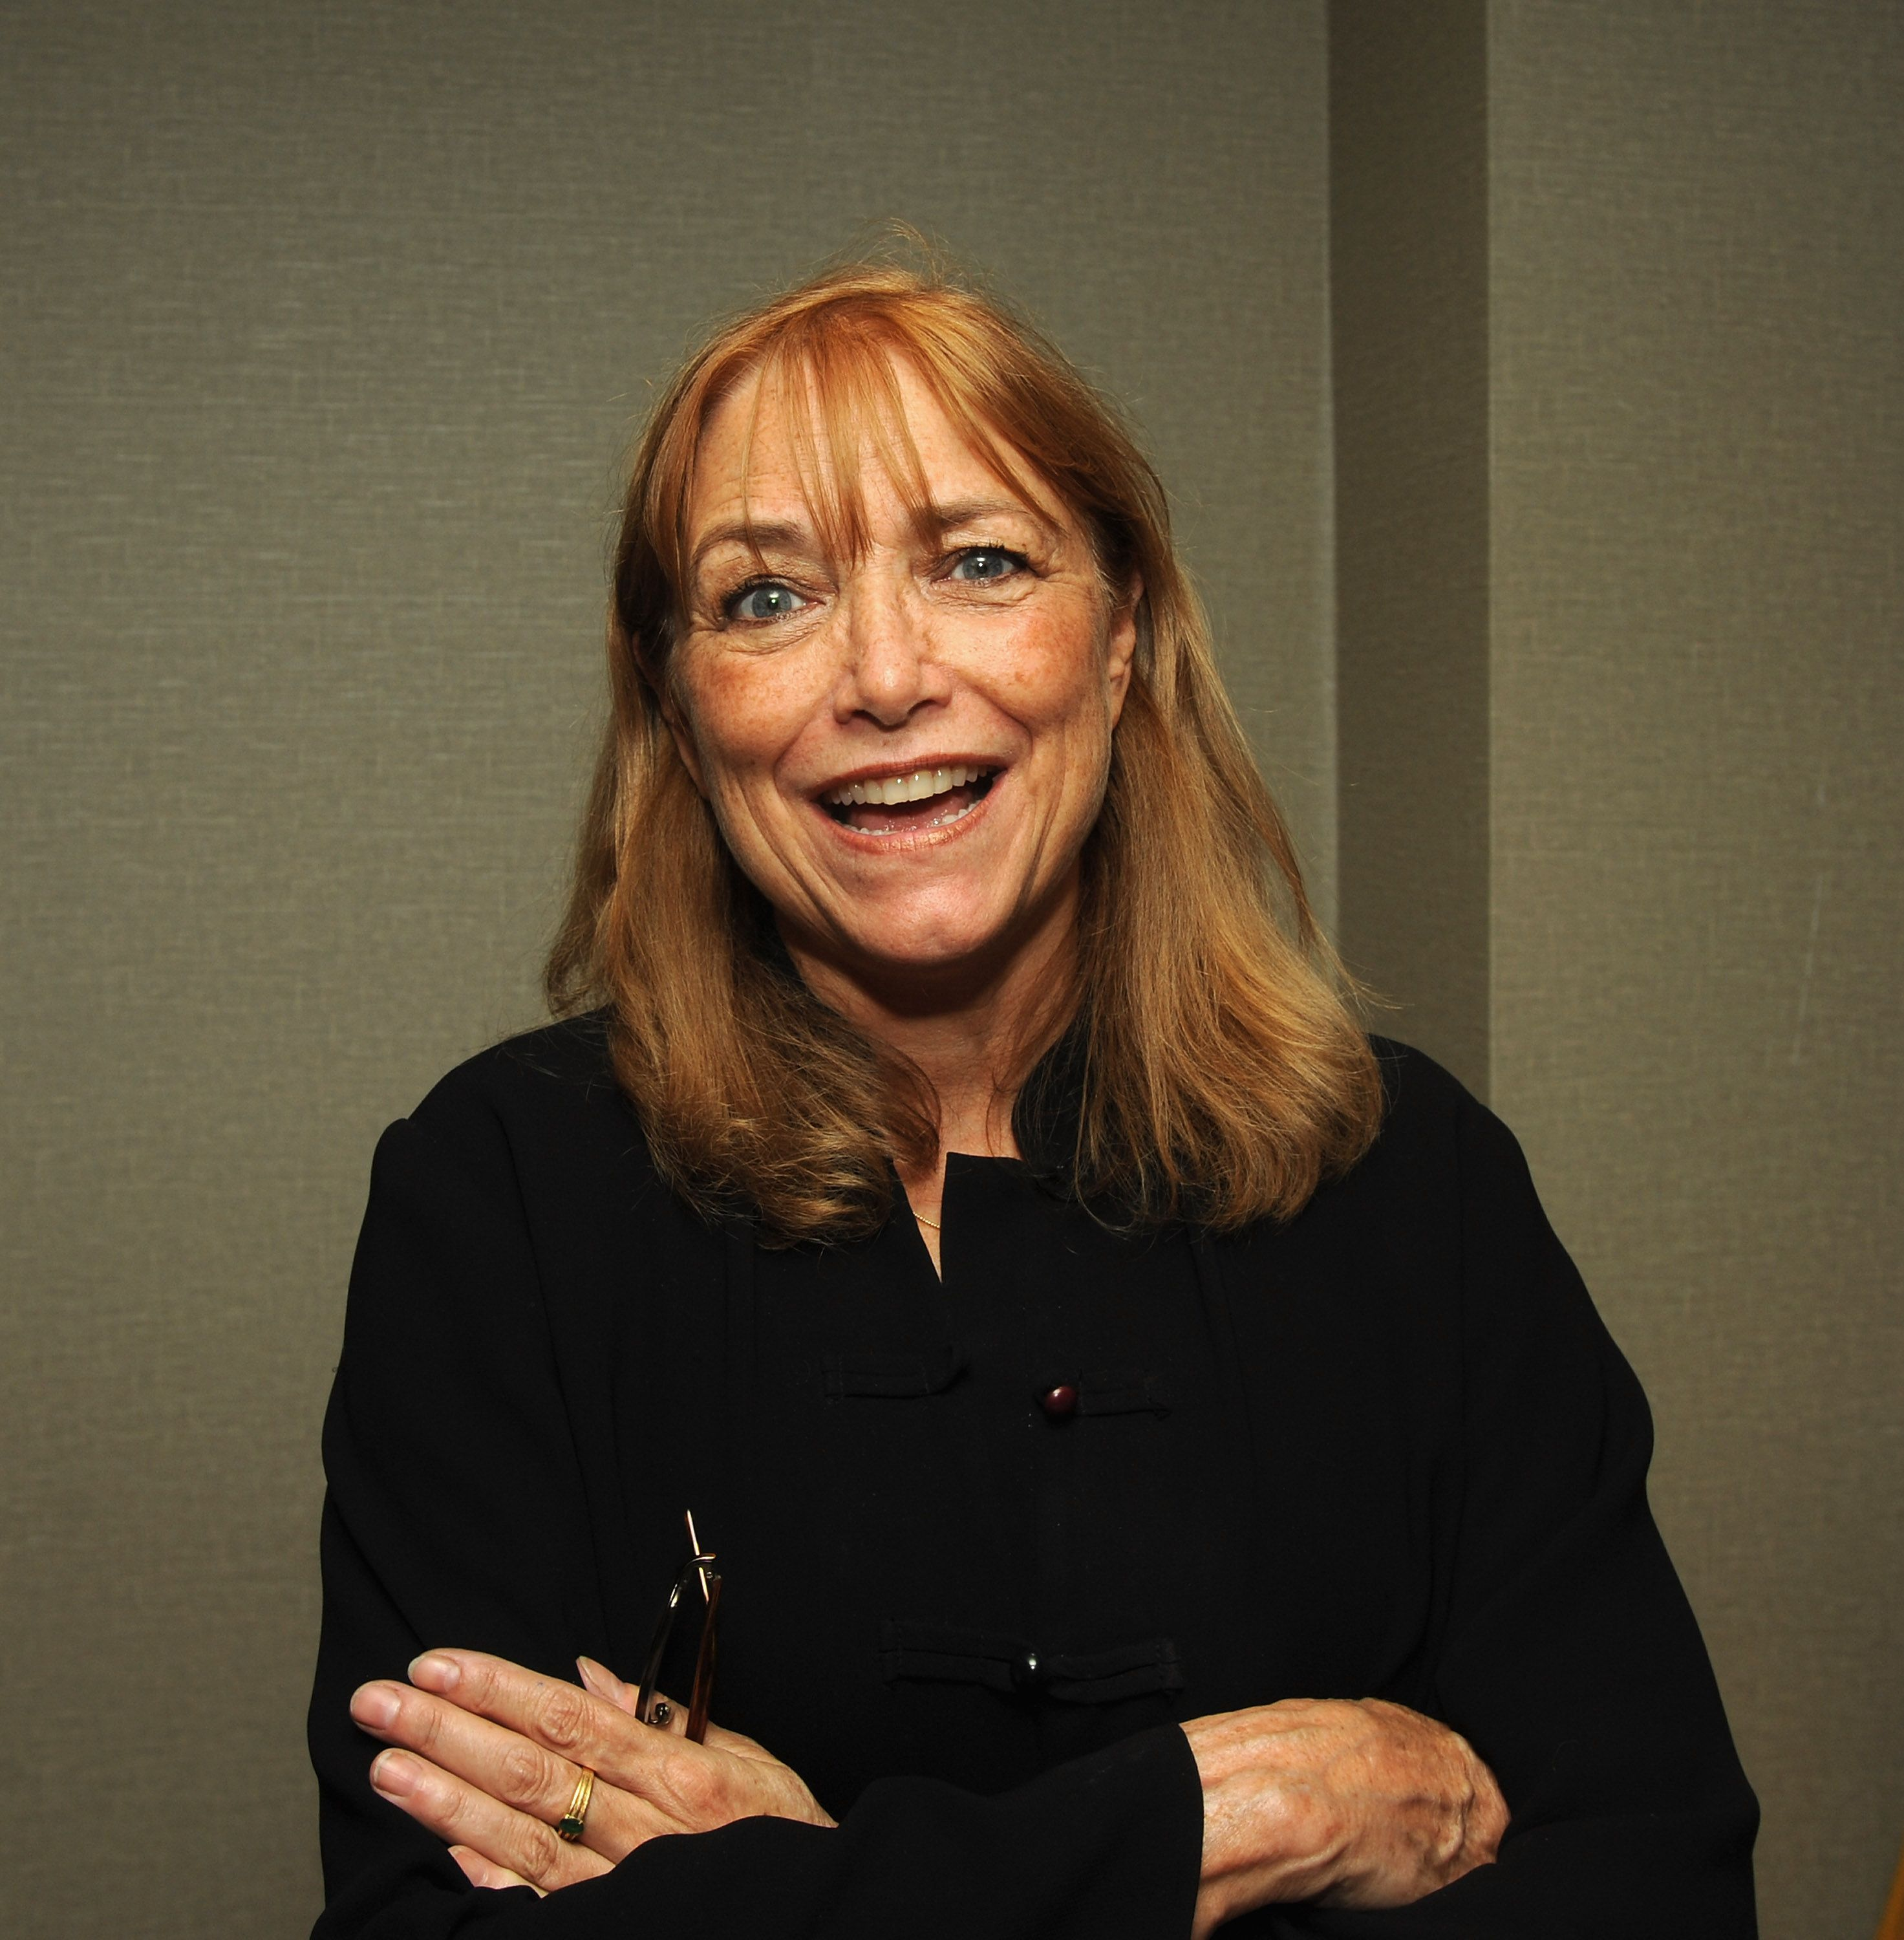 Karen Allen assiste le 08 février 2020 à Santa Monica, en Californie. | Photo : Getty Images